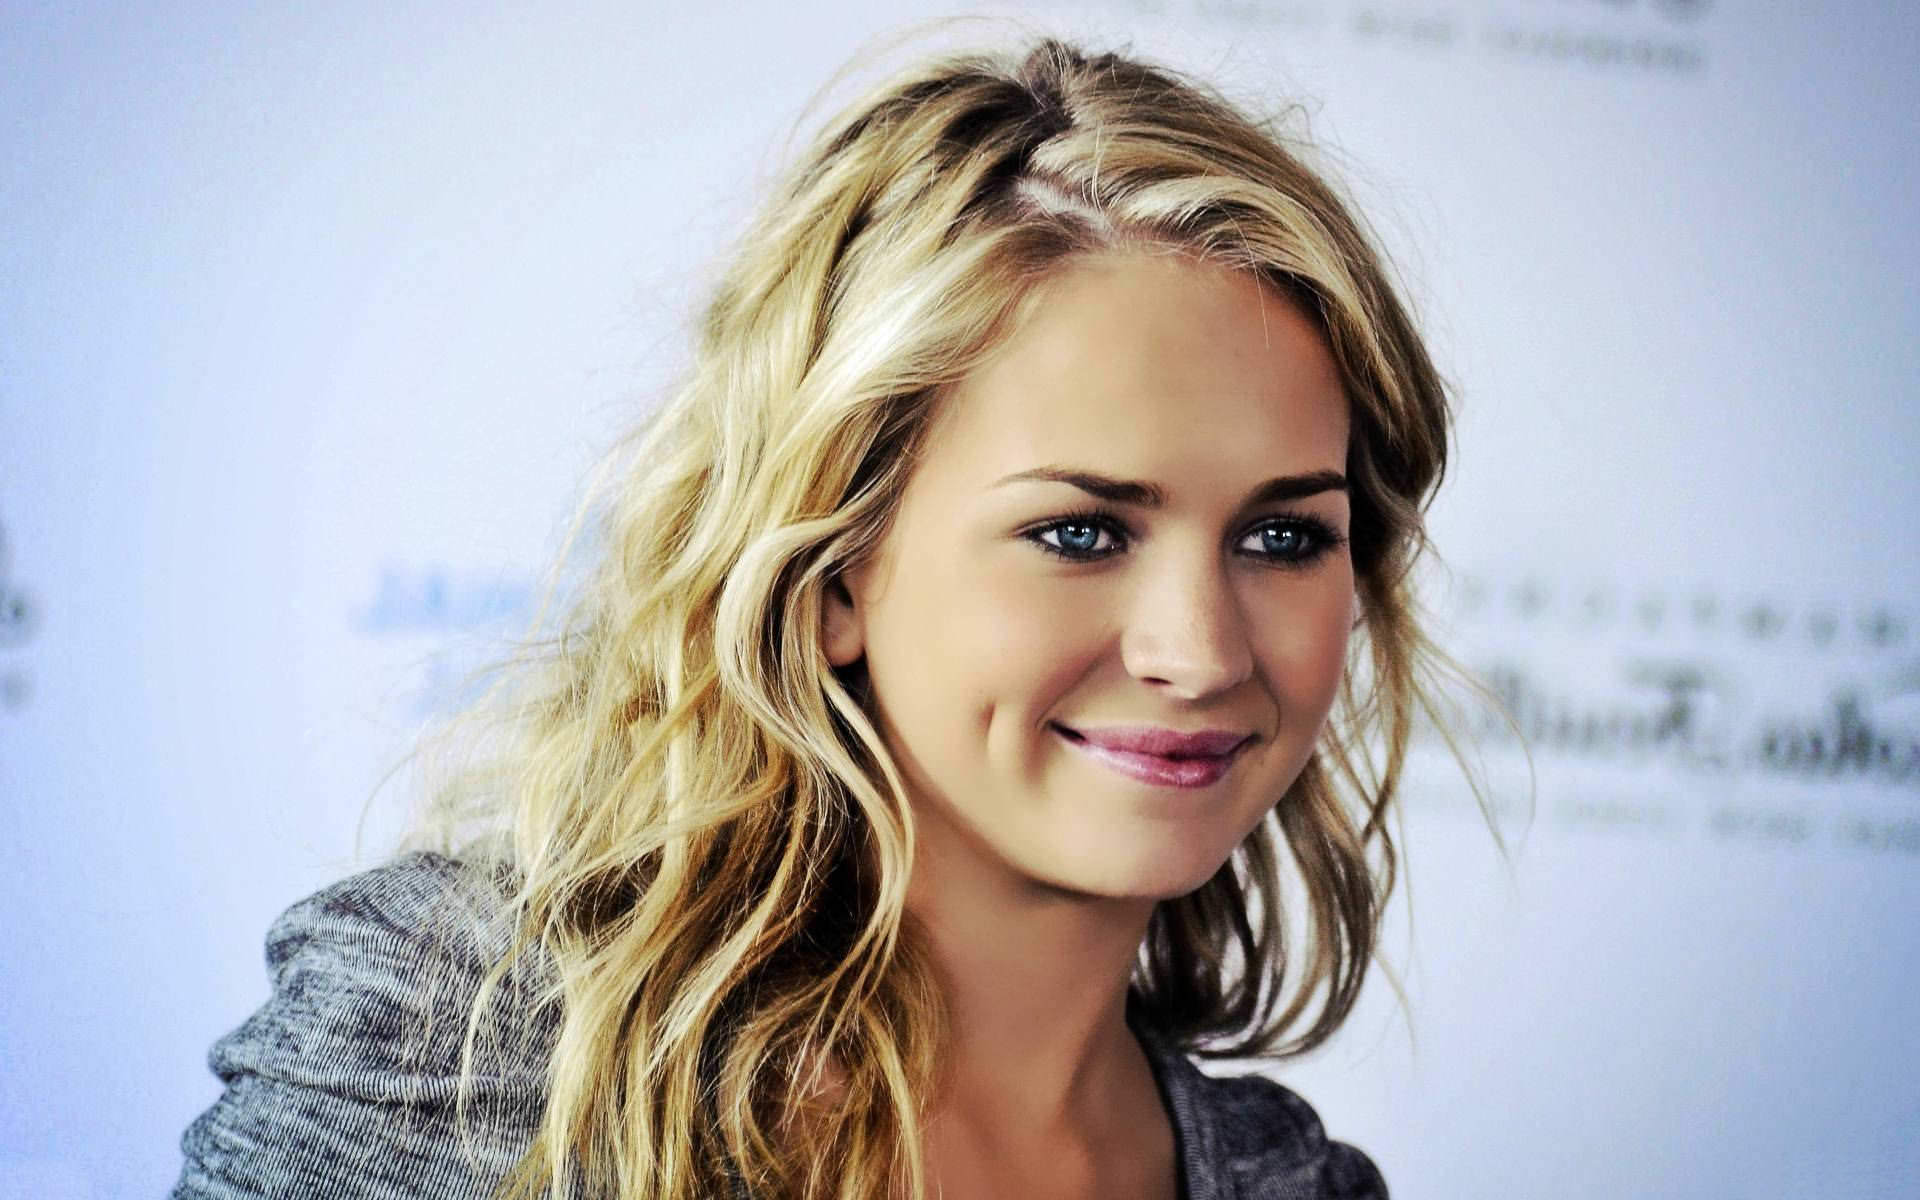 britt robertson celebrity wallpaper 54049 1920x1200 px